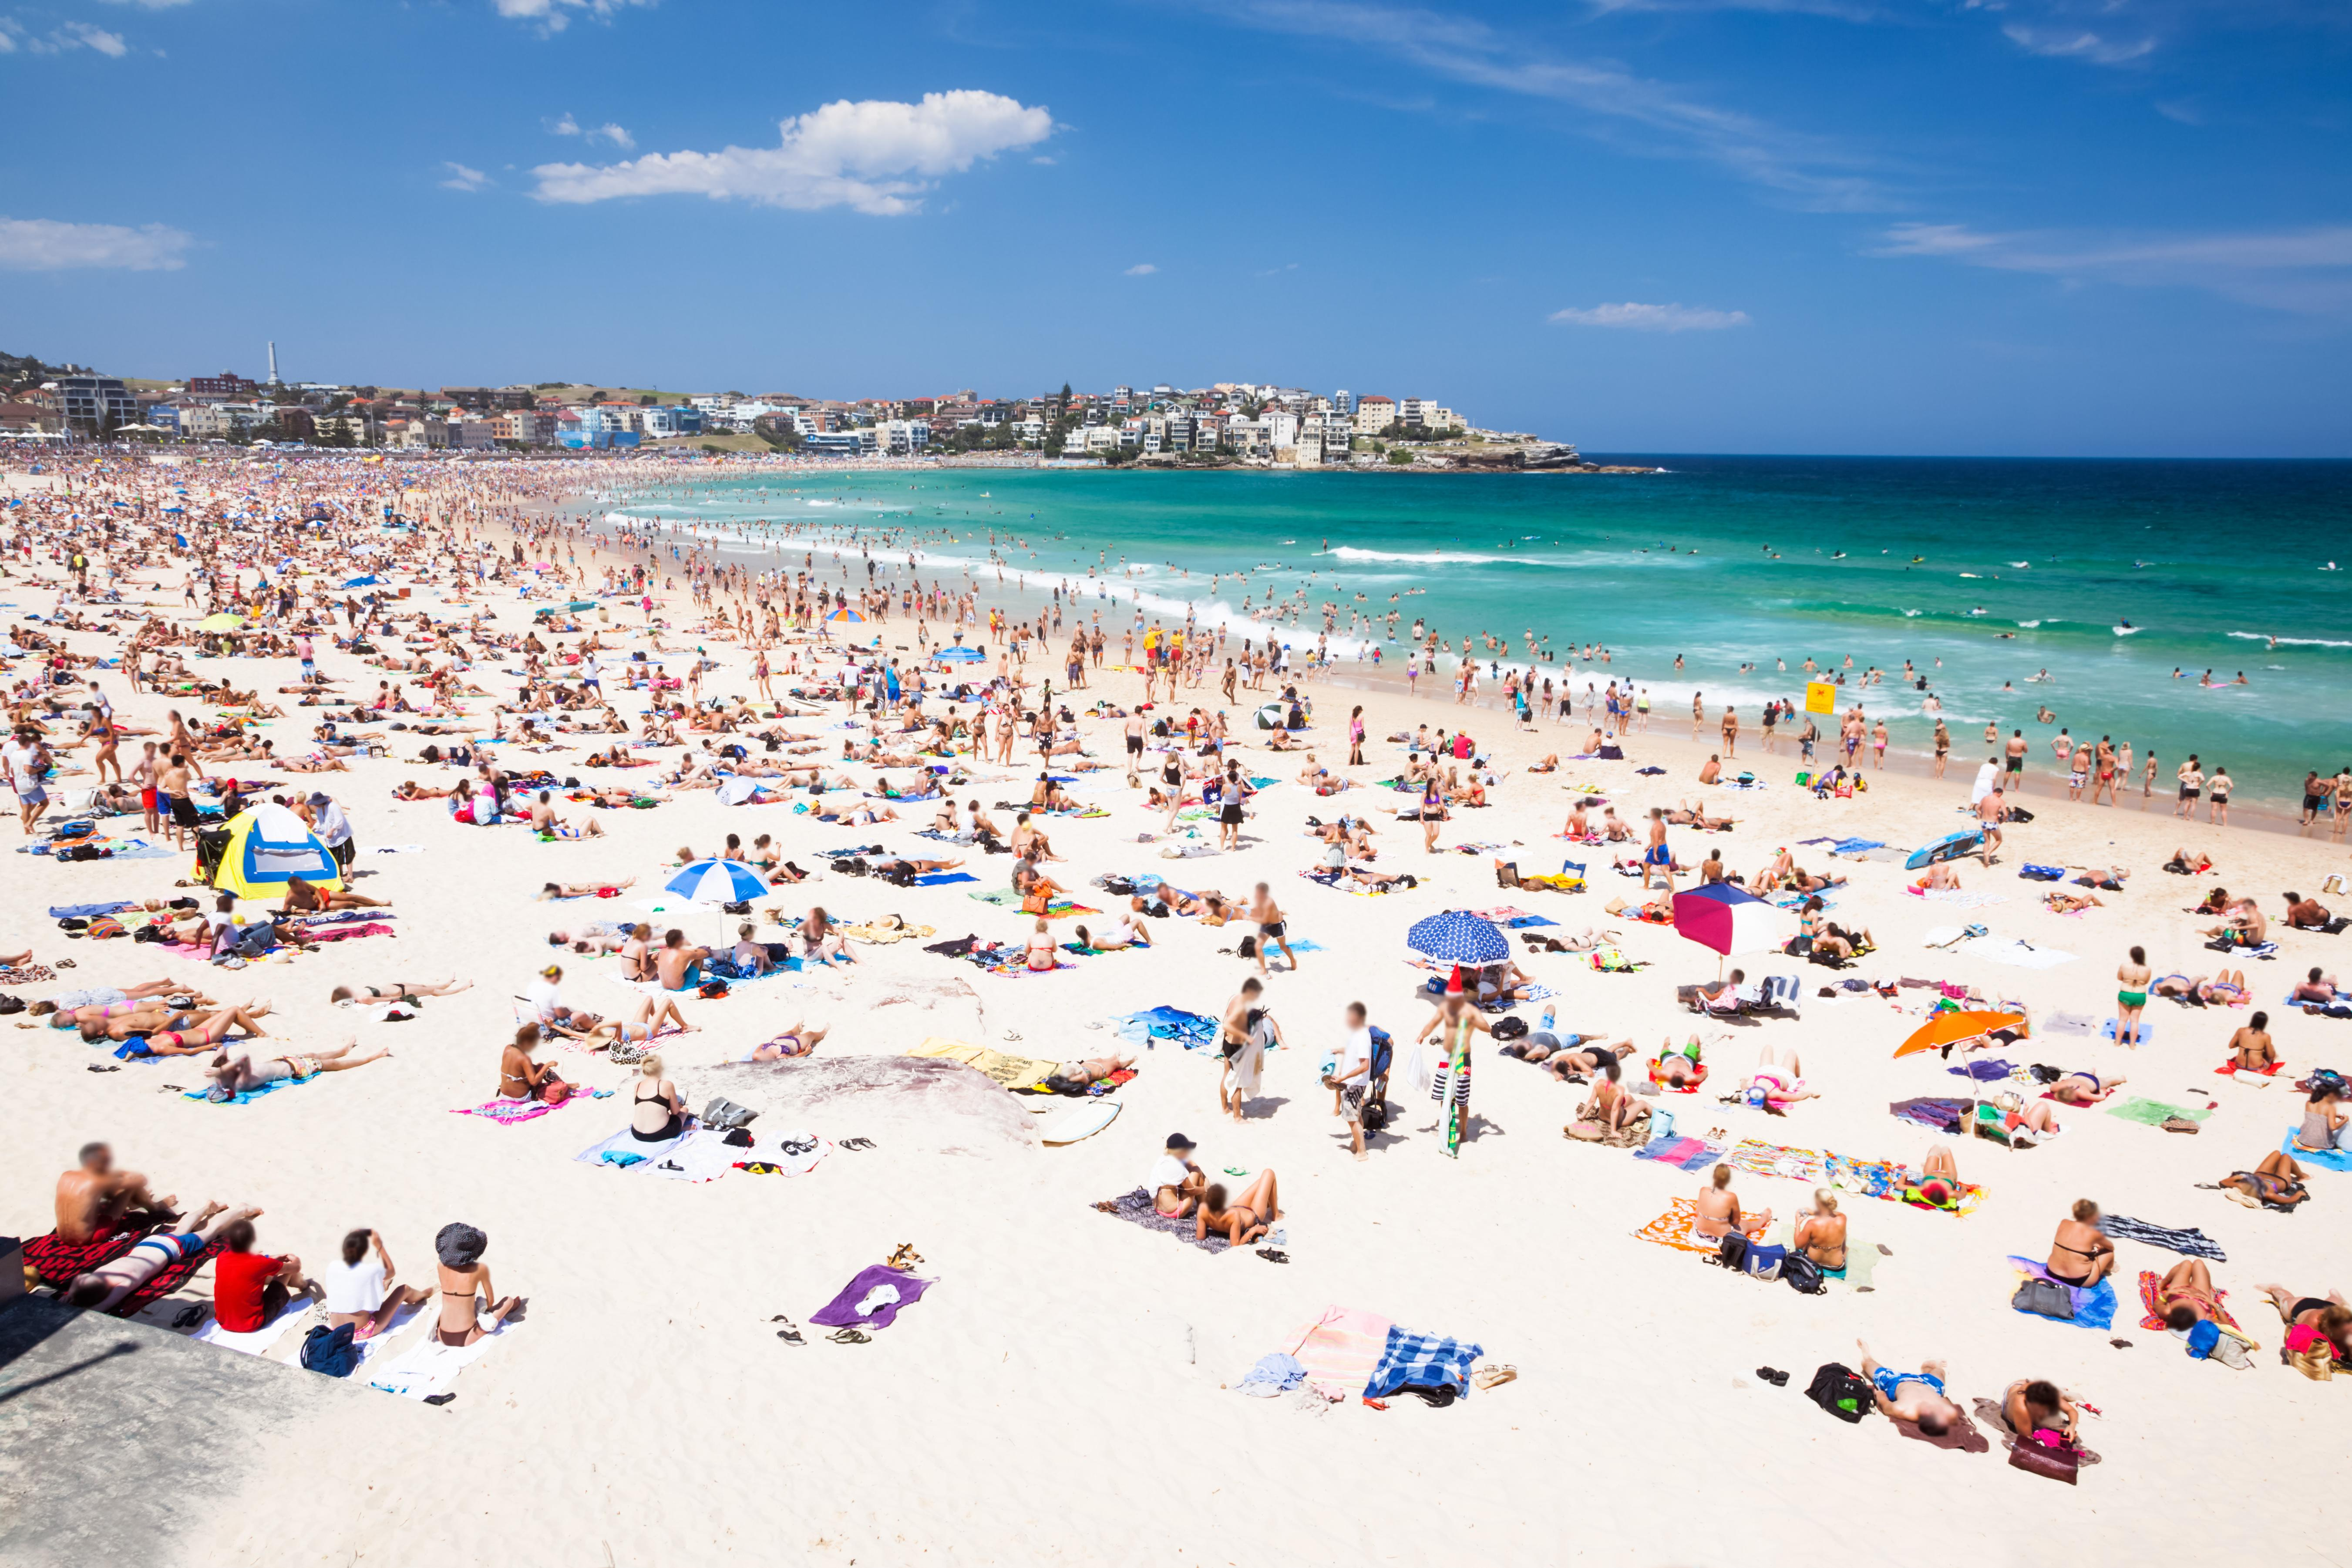 Australia Named And Bondi Beach